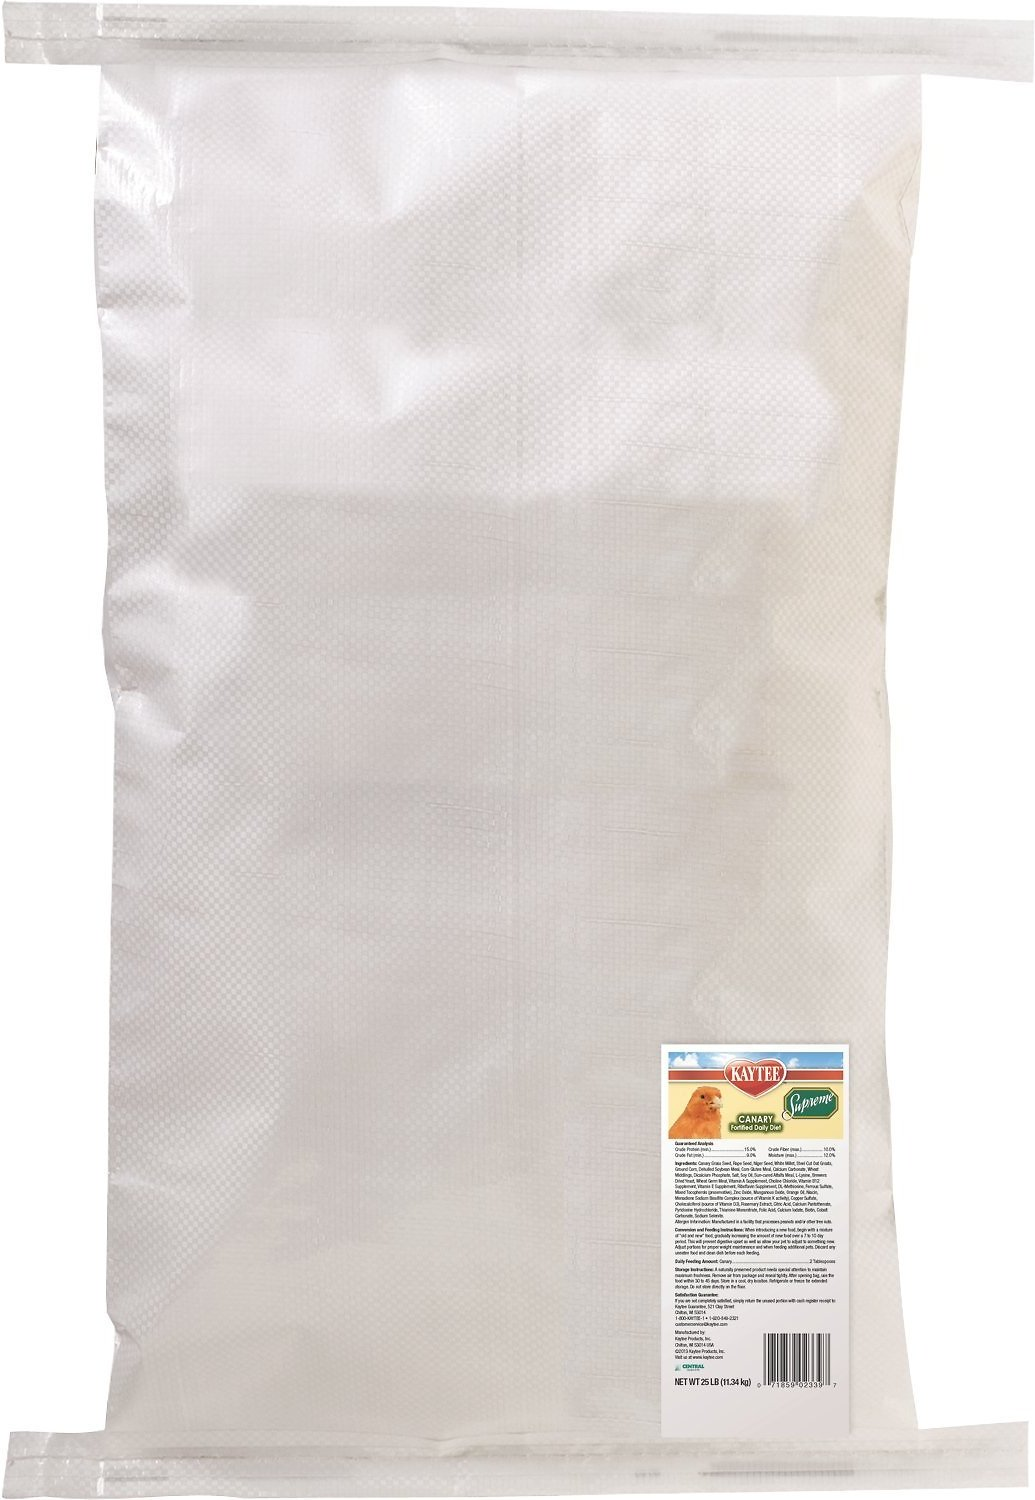 Kaytee Supreme Canary Bird Food, 5-lb bag